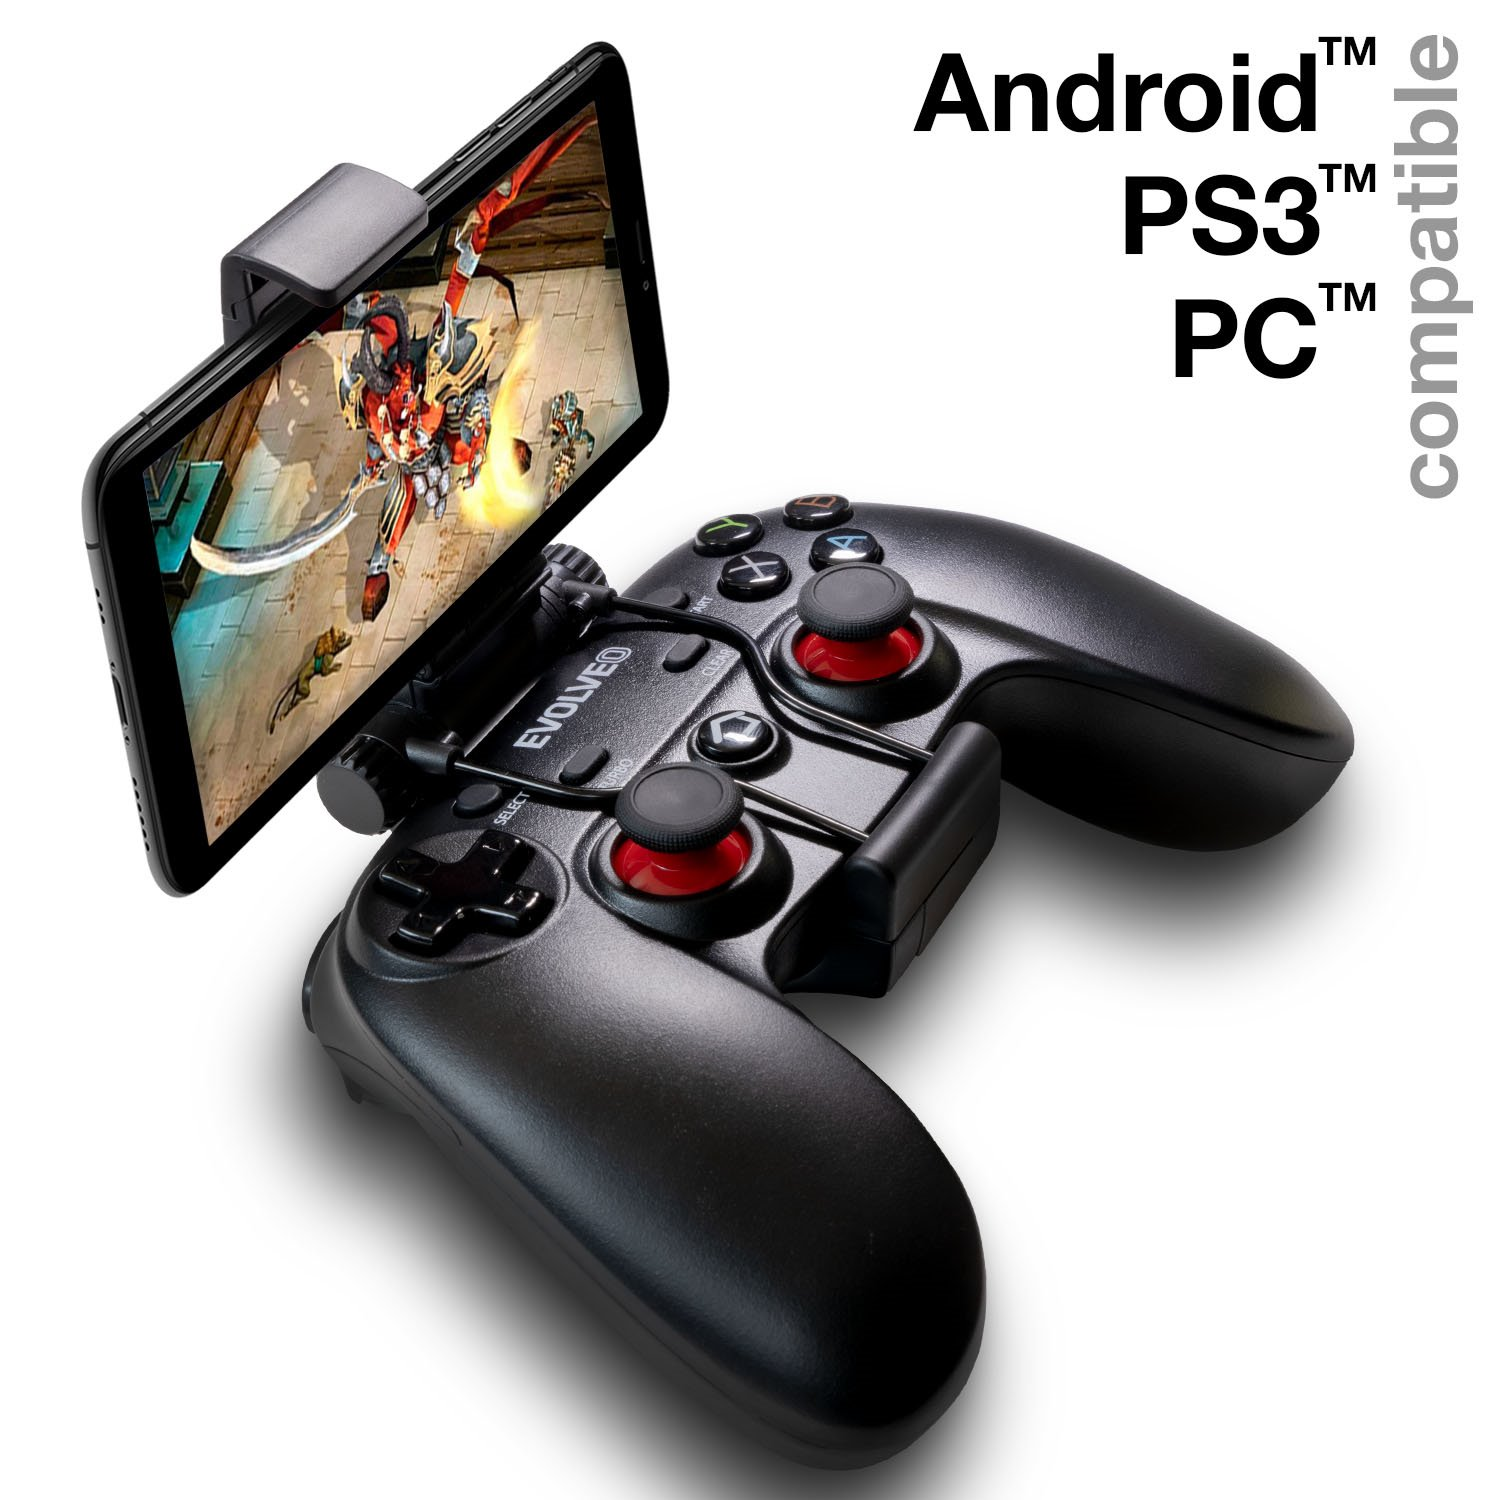 EVOLVEO Fighter F1, wireless gamepad for PC, PlayStation 3, Android box/smartphone